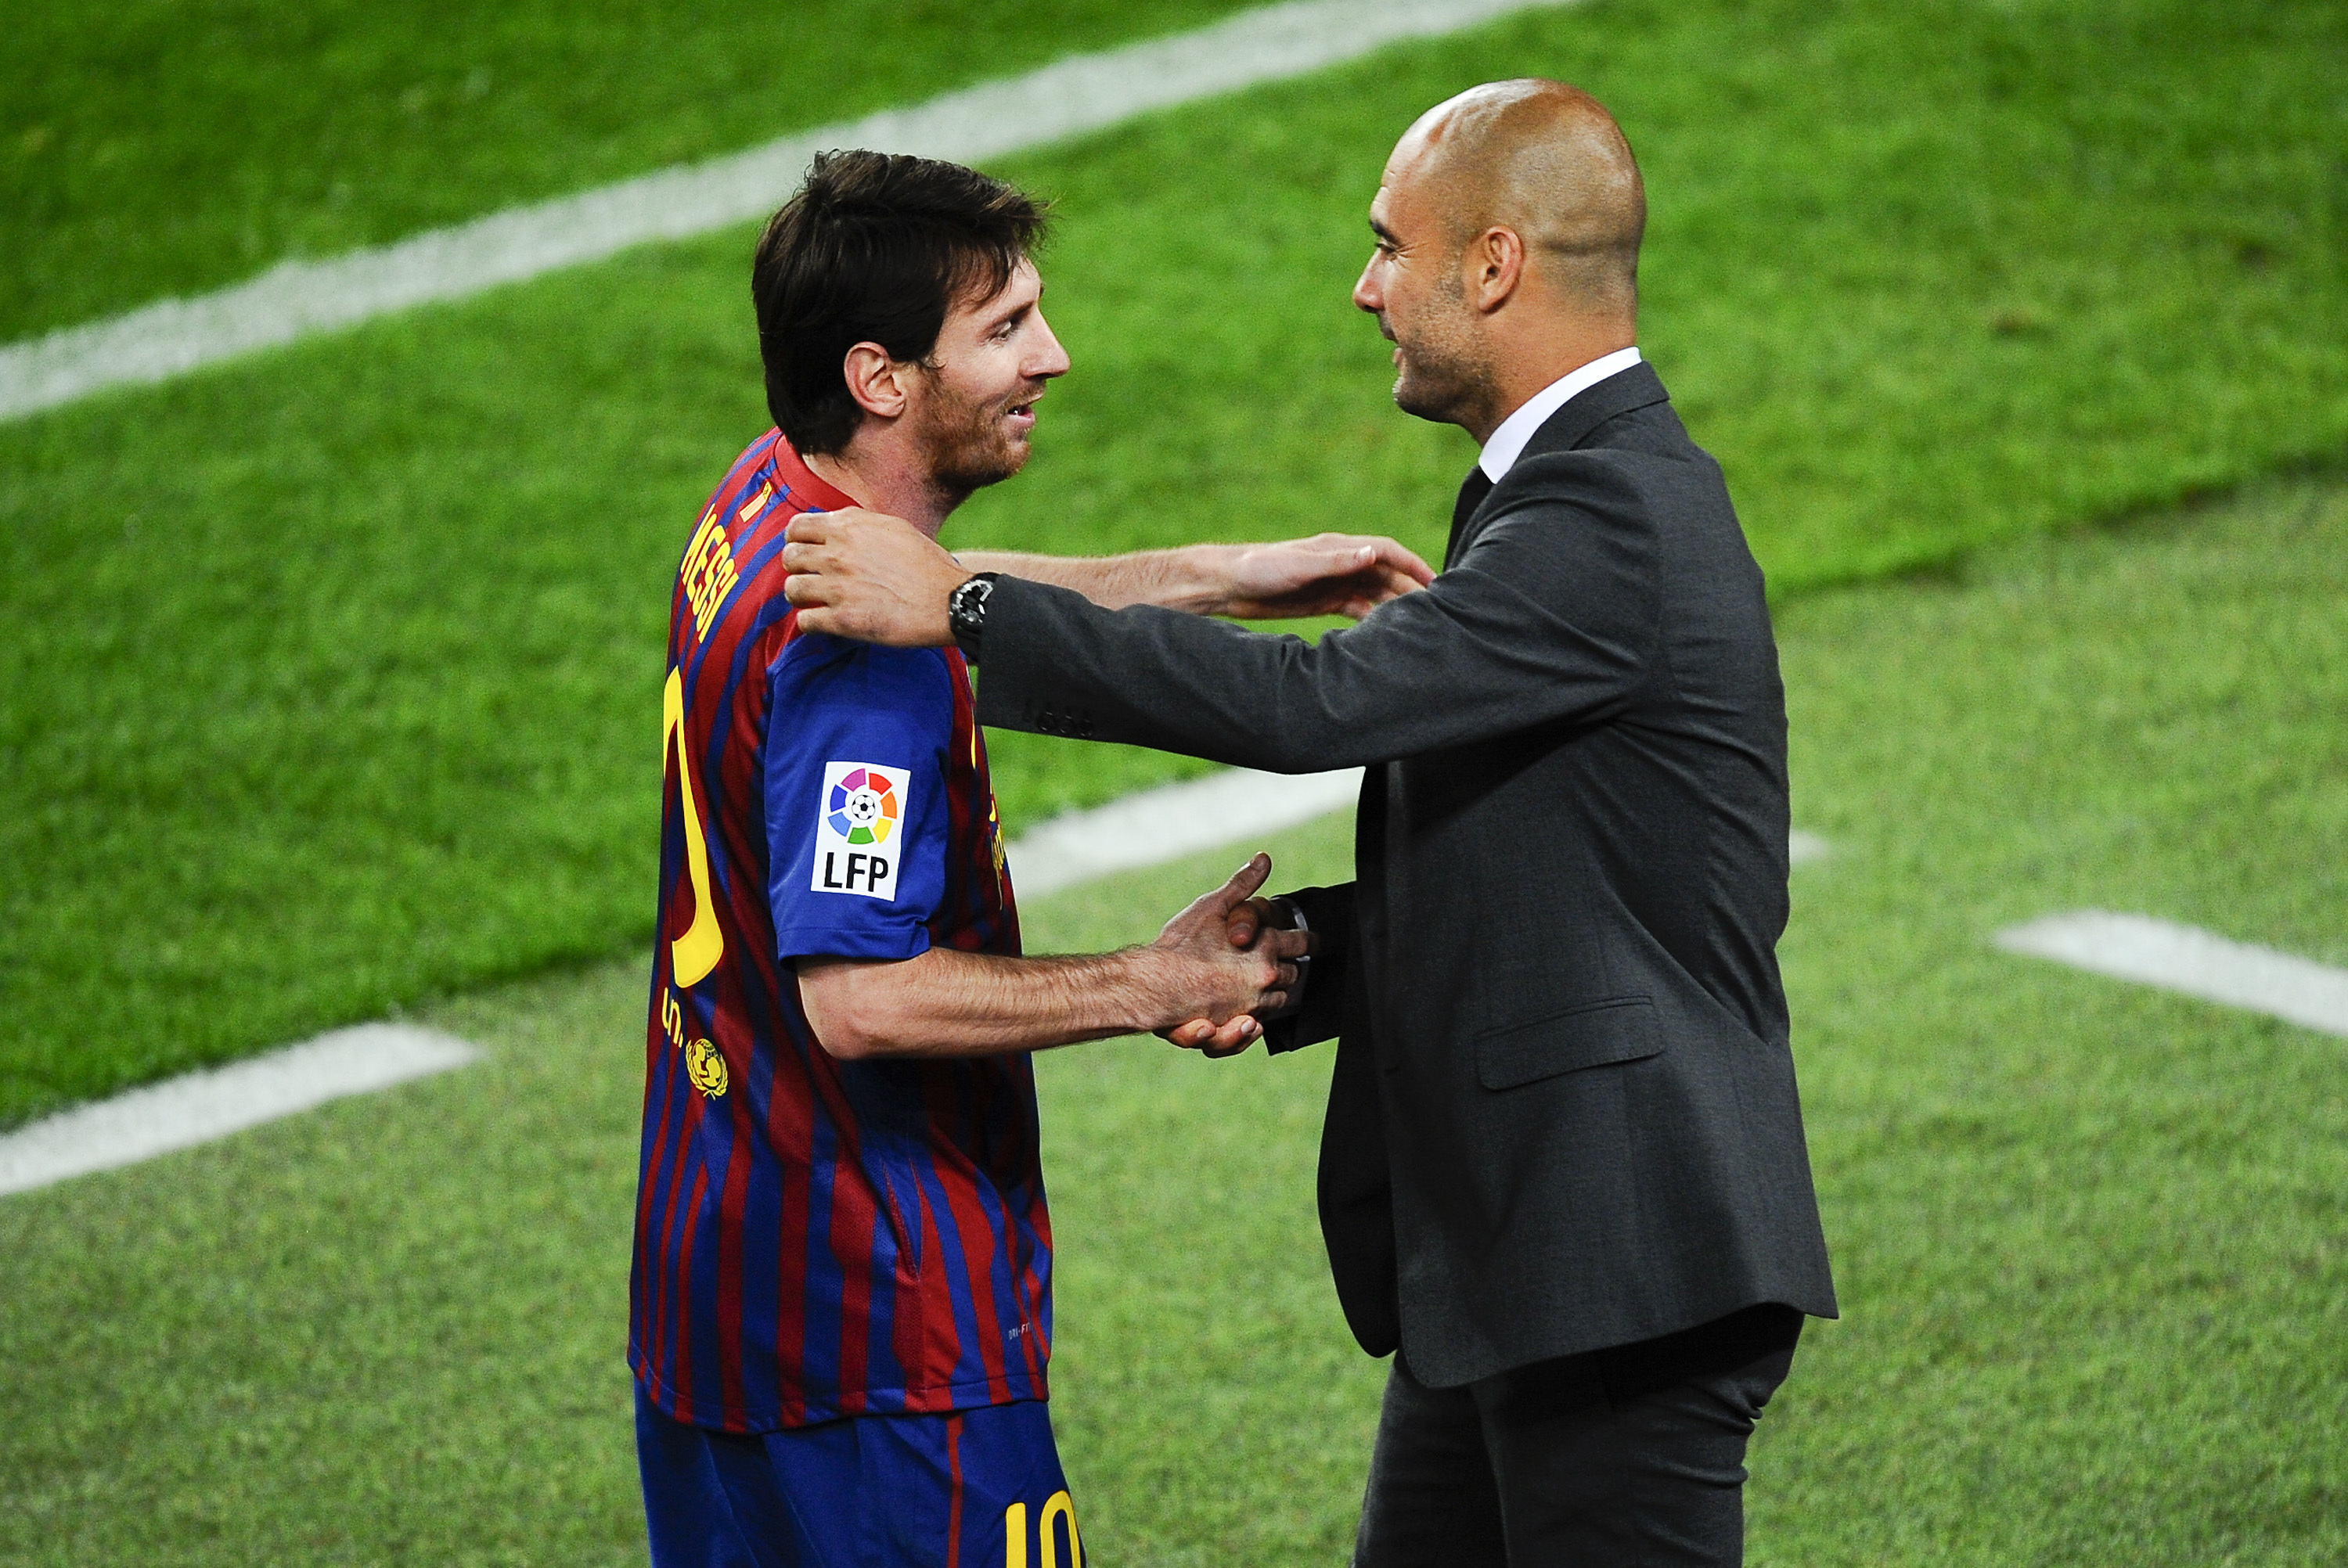 Leo Messi Alleged to Have Humiliated Pep Guardiola with a